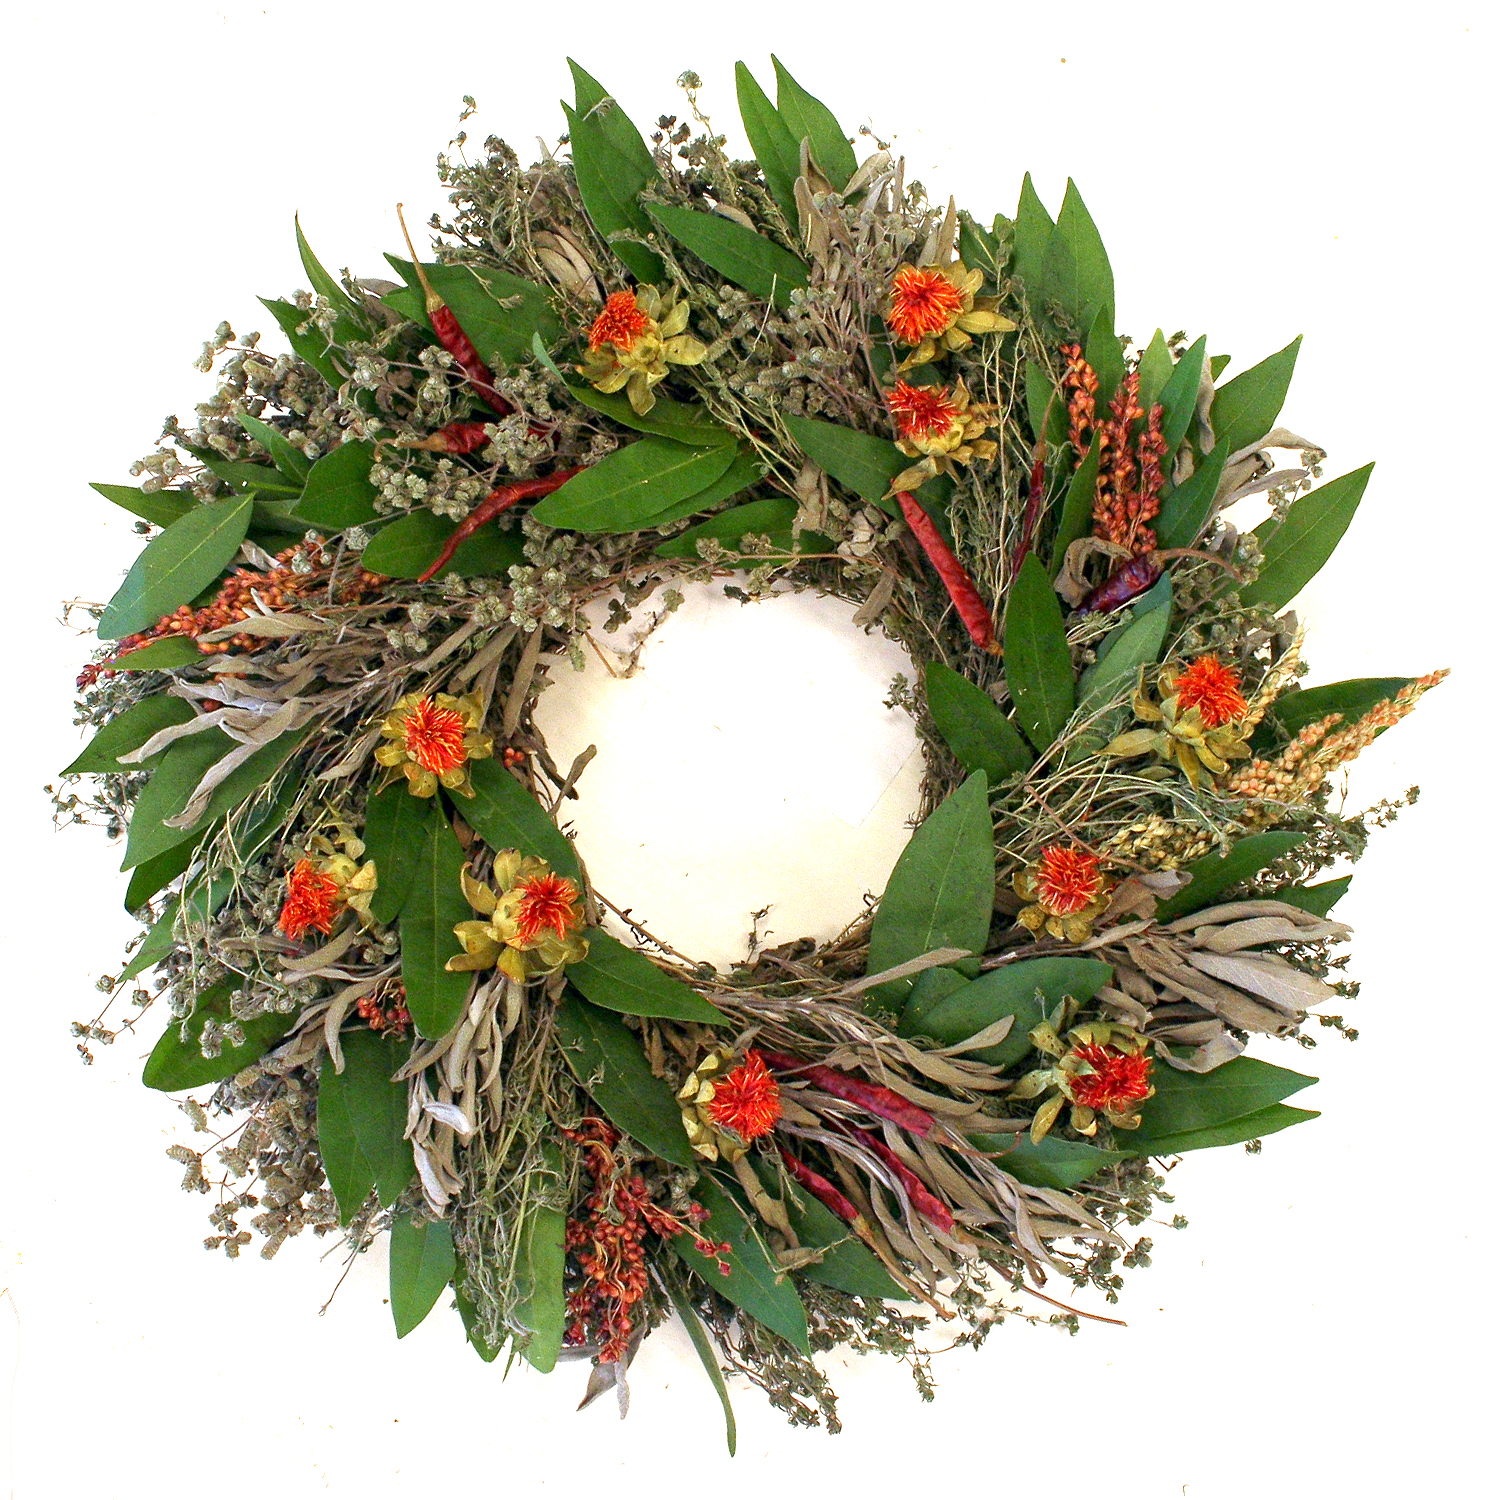 SAFFLOWER WREATH ~CLICK TO PURCHASE